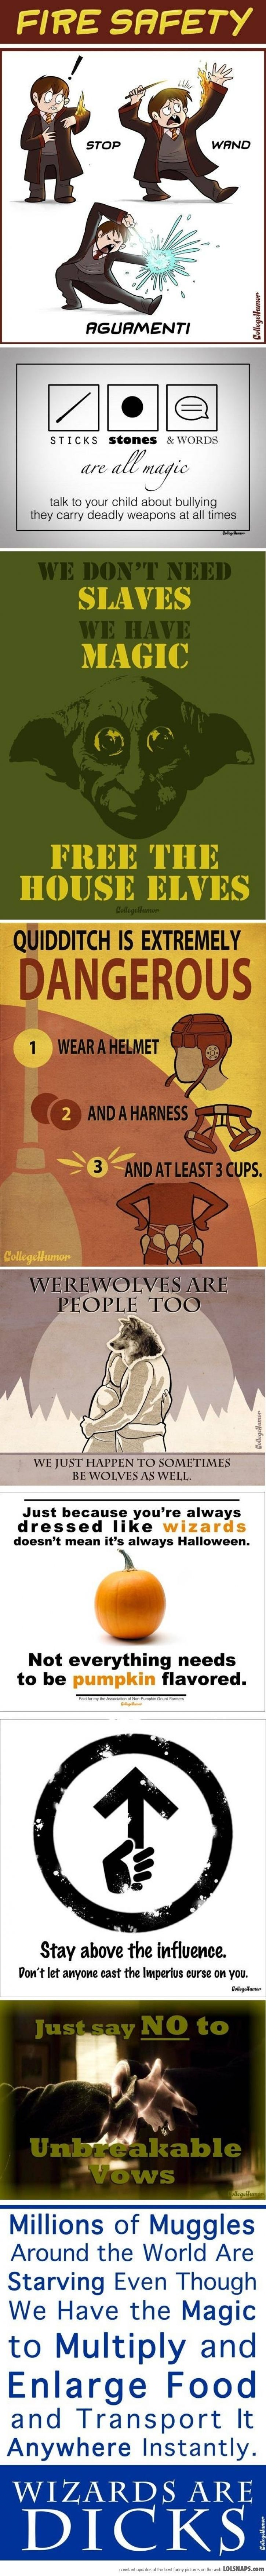 PSAs For Harry Potter...  Funny even though i dont think wizards are dicks.